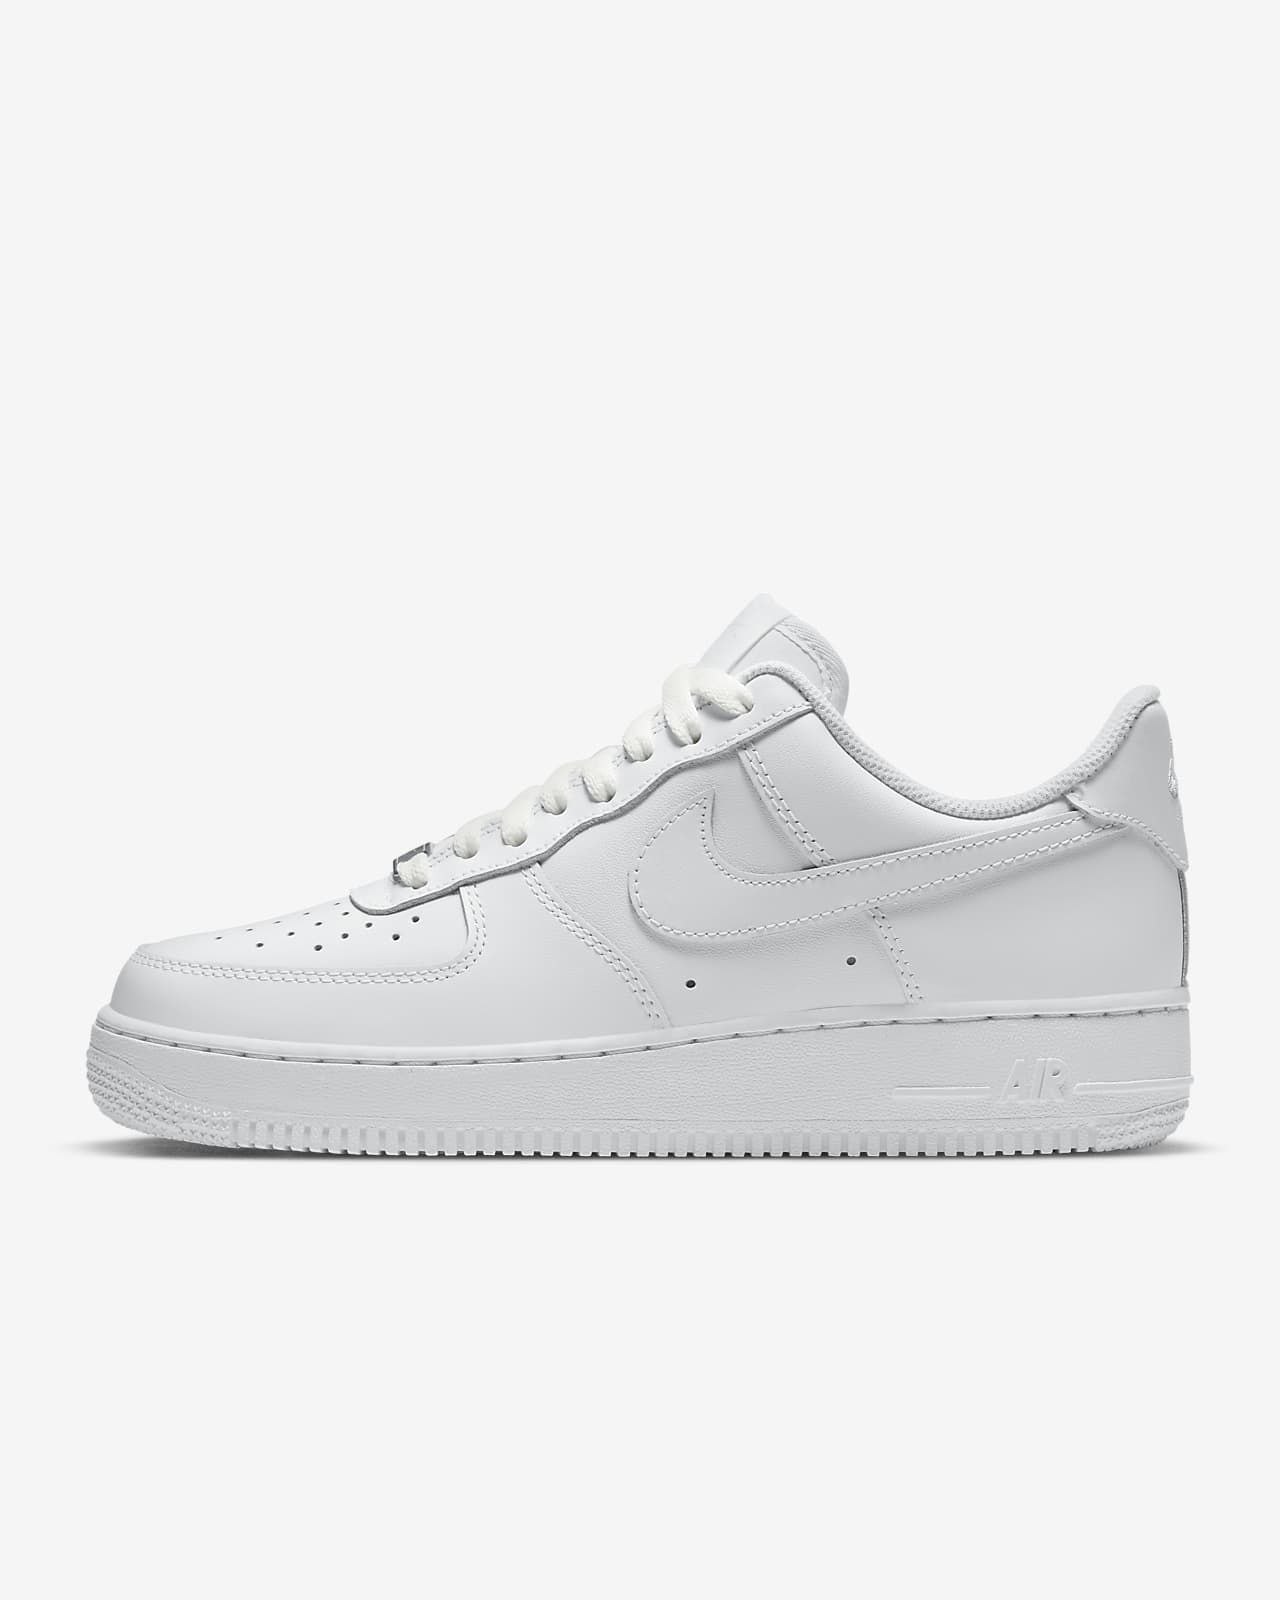 Chaussure Nike Air Force 1 '07 pour Femme. Nike CA